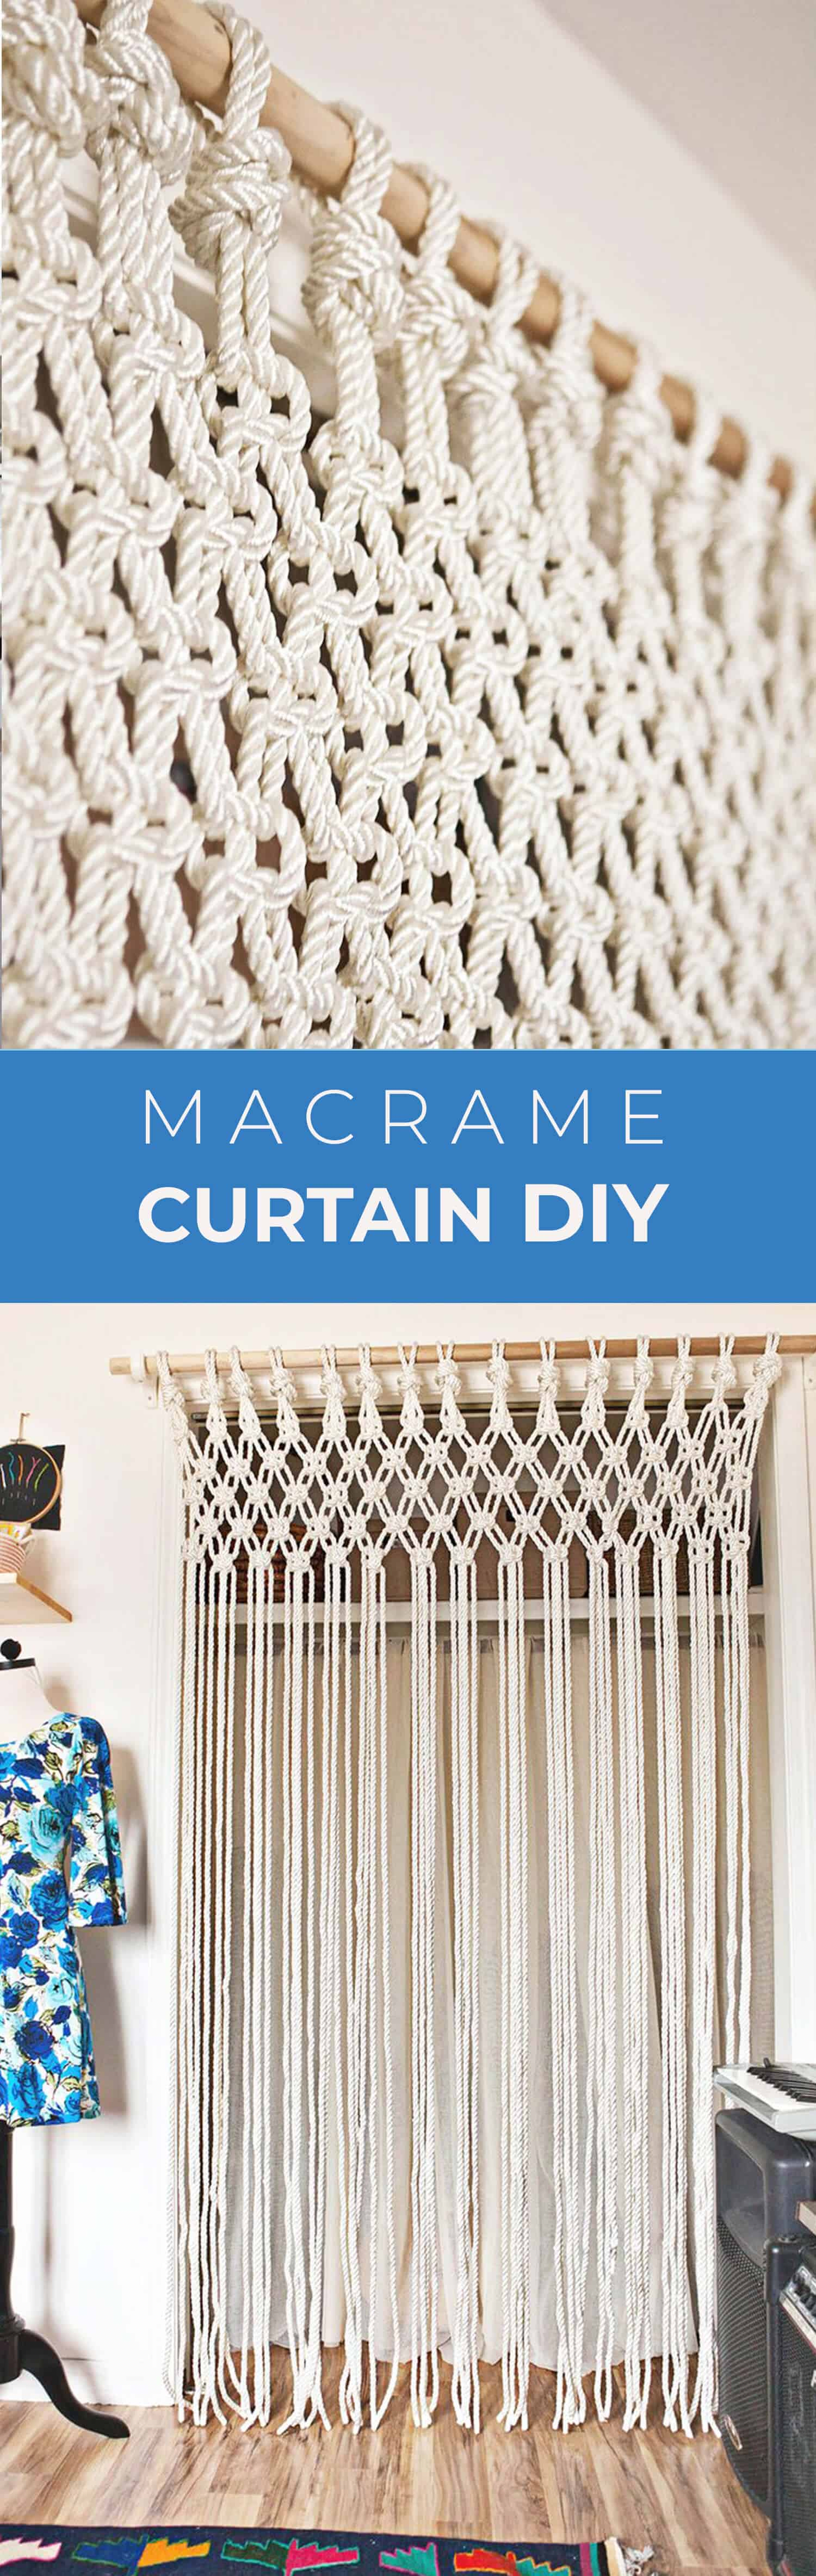 Now That My Curtain Is Done I Just Need To Pop In A Few Baskets Organize The Inside Ohhh This One Has Pom Poms Hy Macrame Days Xo Emma